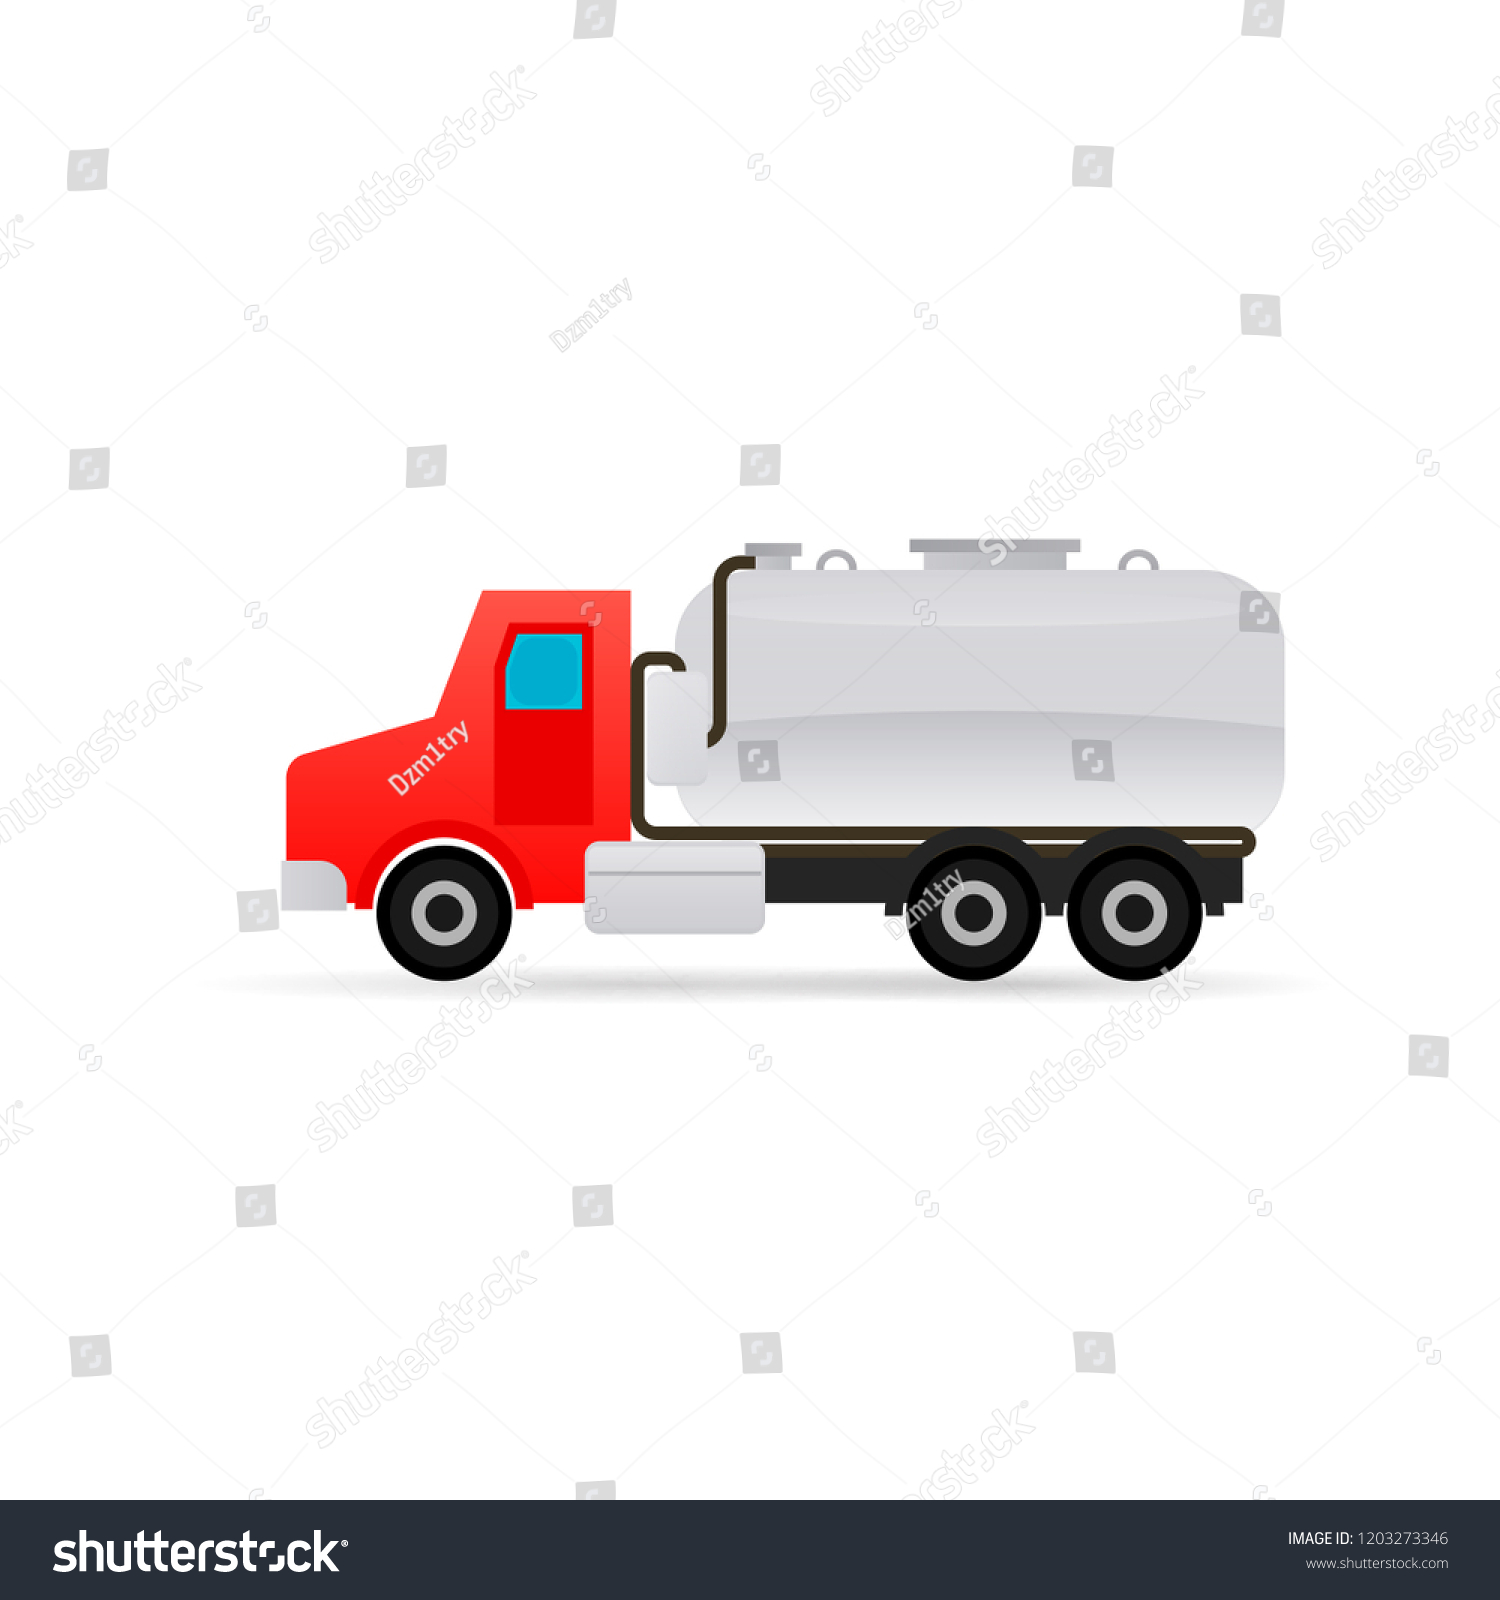 hight resolution of septic tank truck icon clipart image isolated on white background